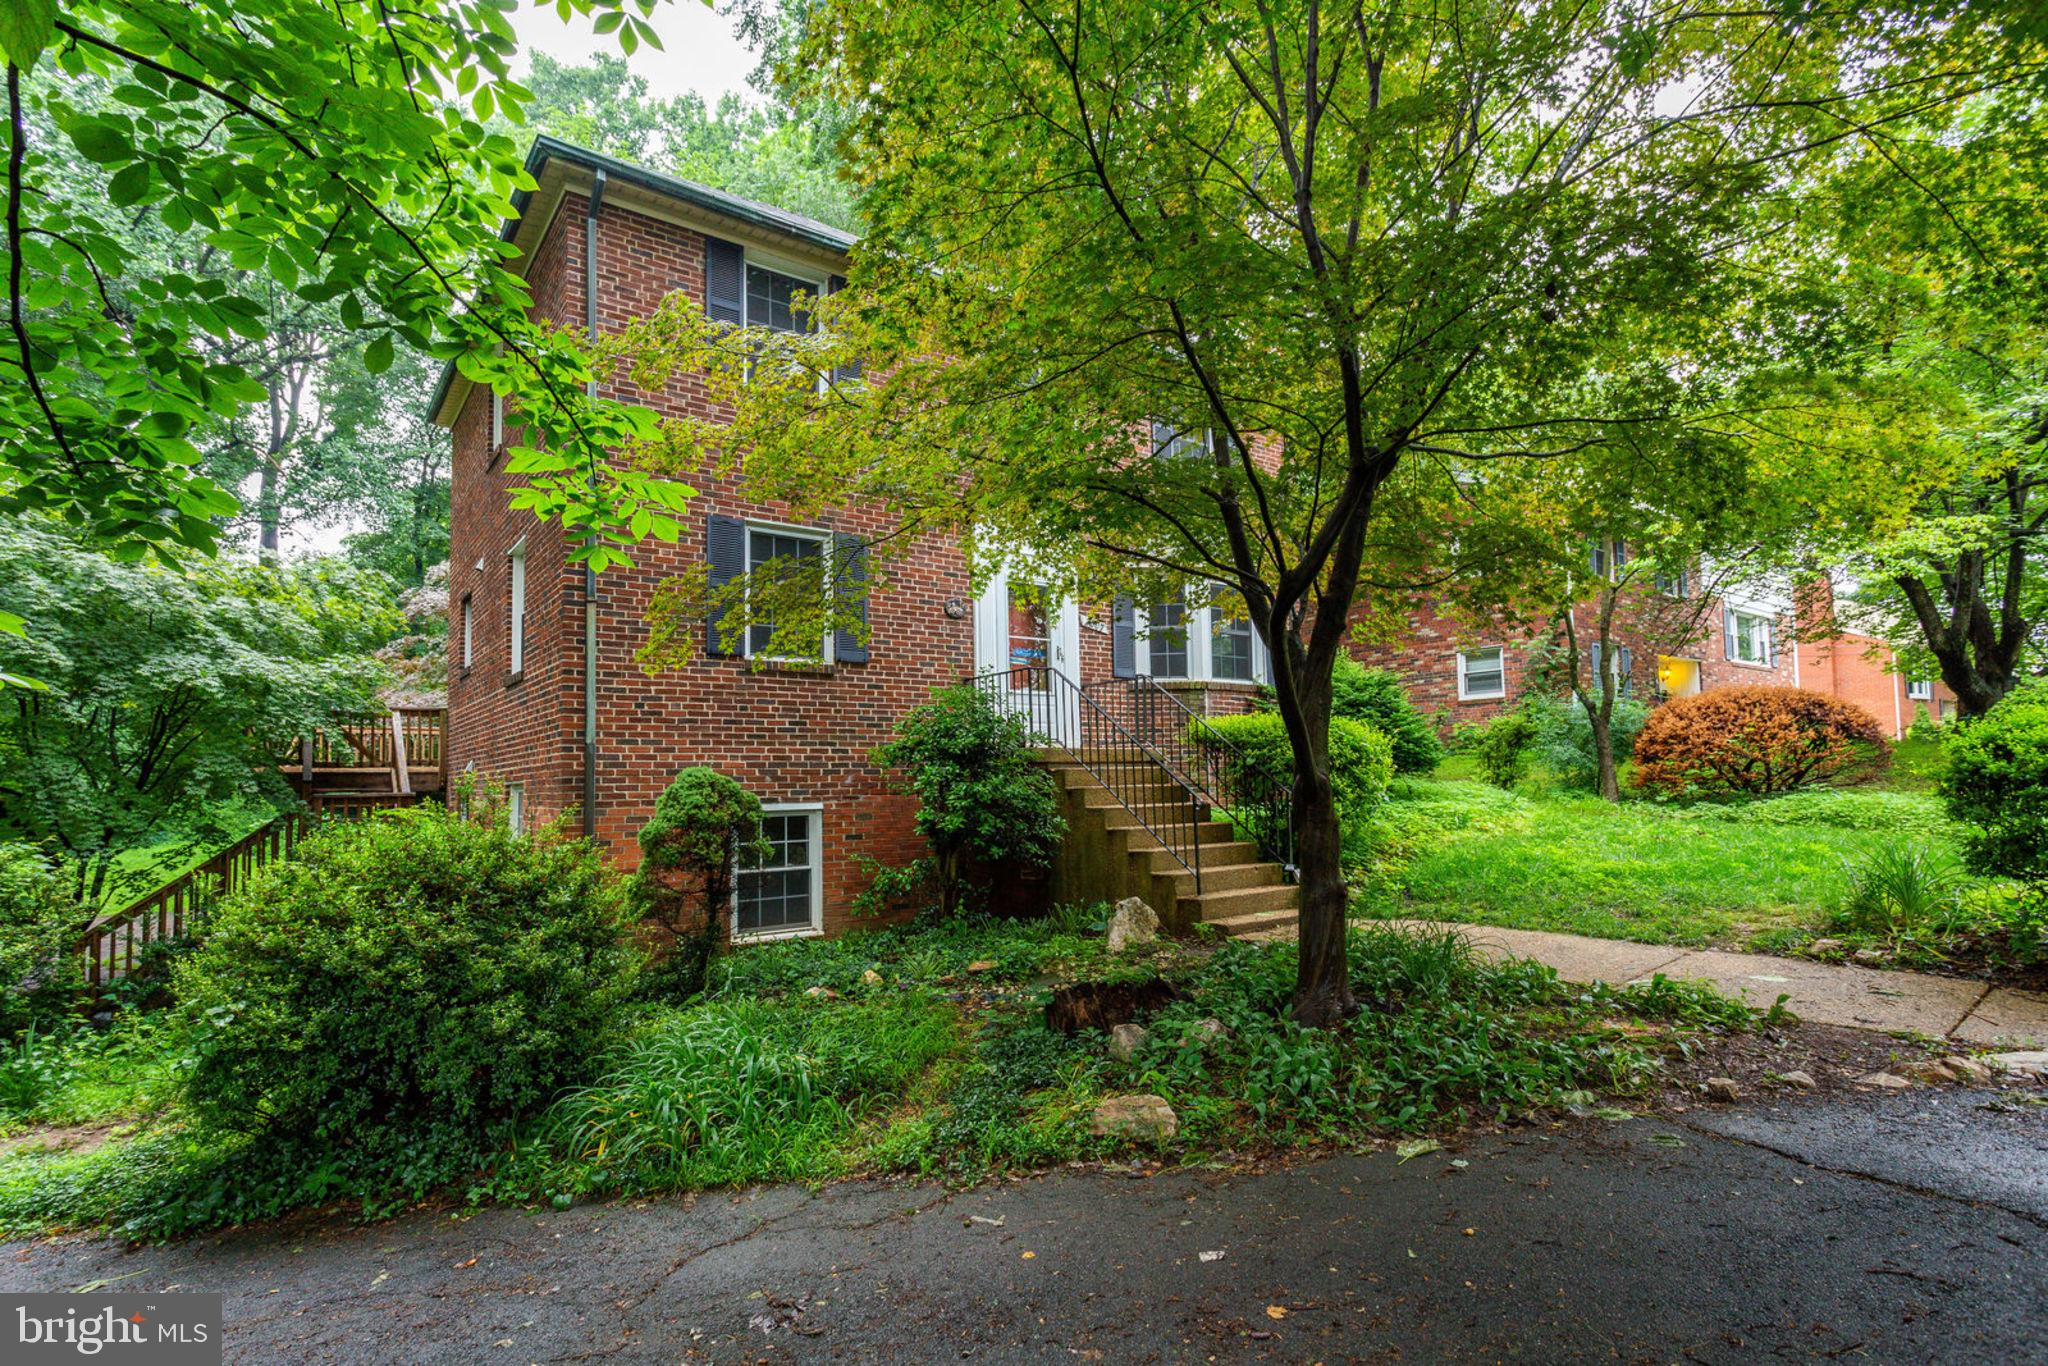 6607 LOCUST STREET, FALLS CHURCH, VA 22046